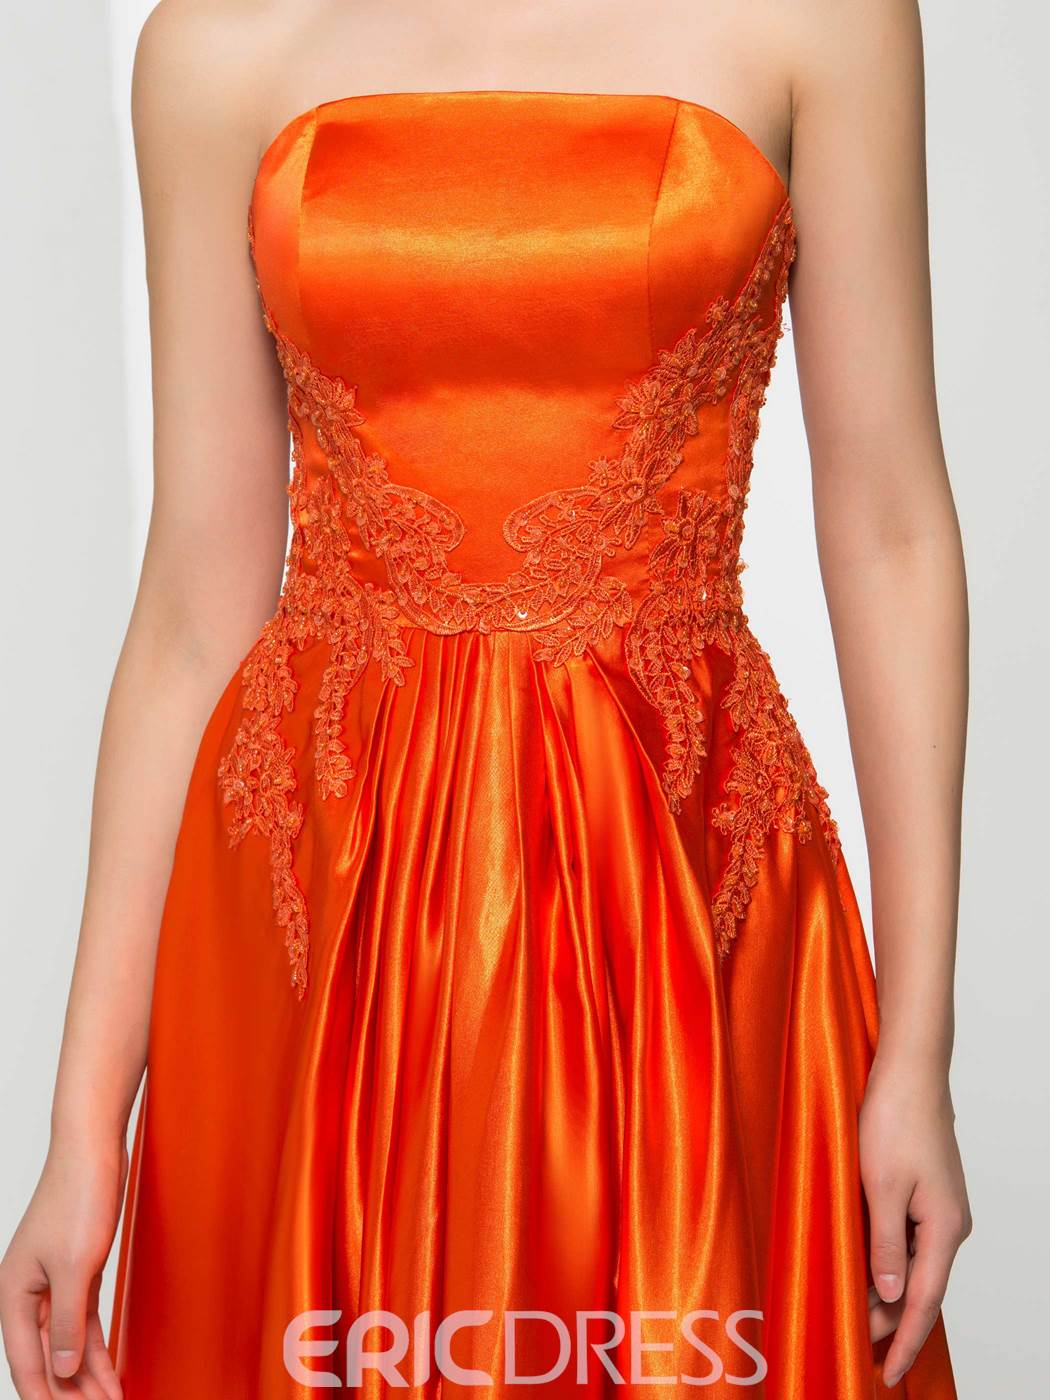 Ericdress Strapless Appliques Split-Front Prom Dress